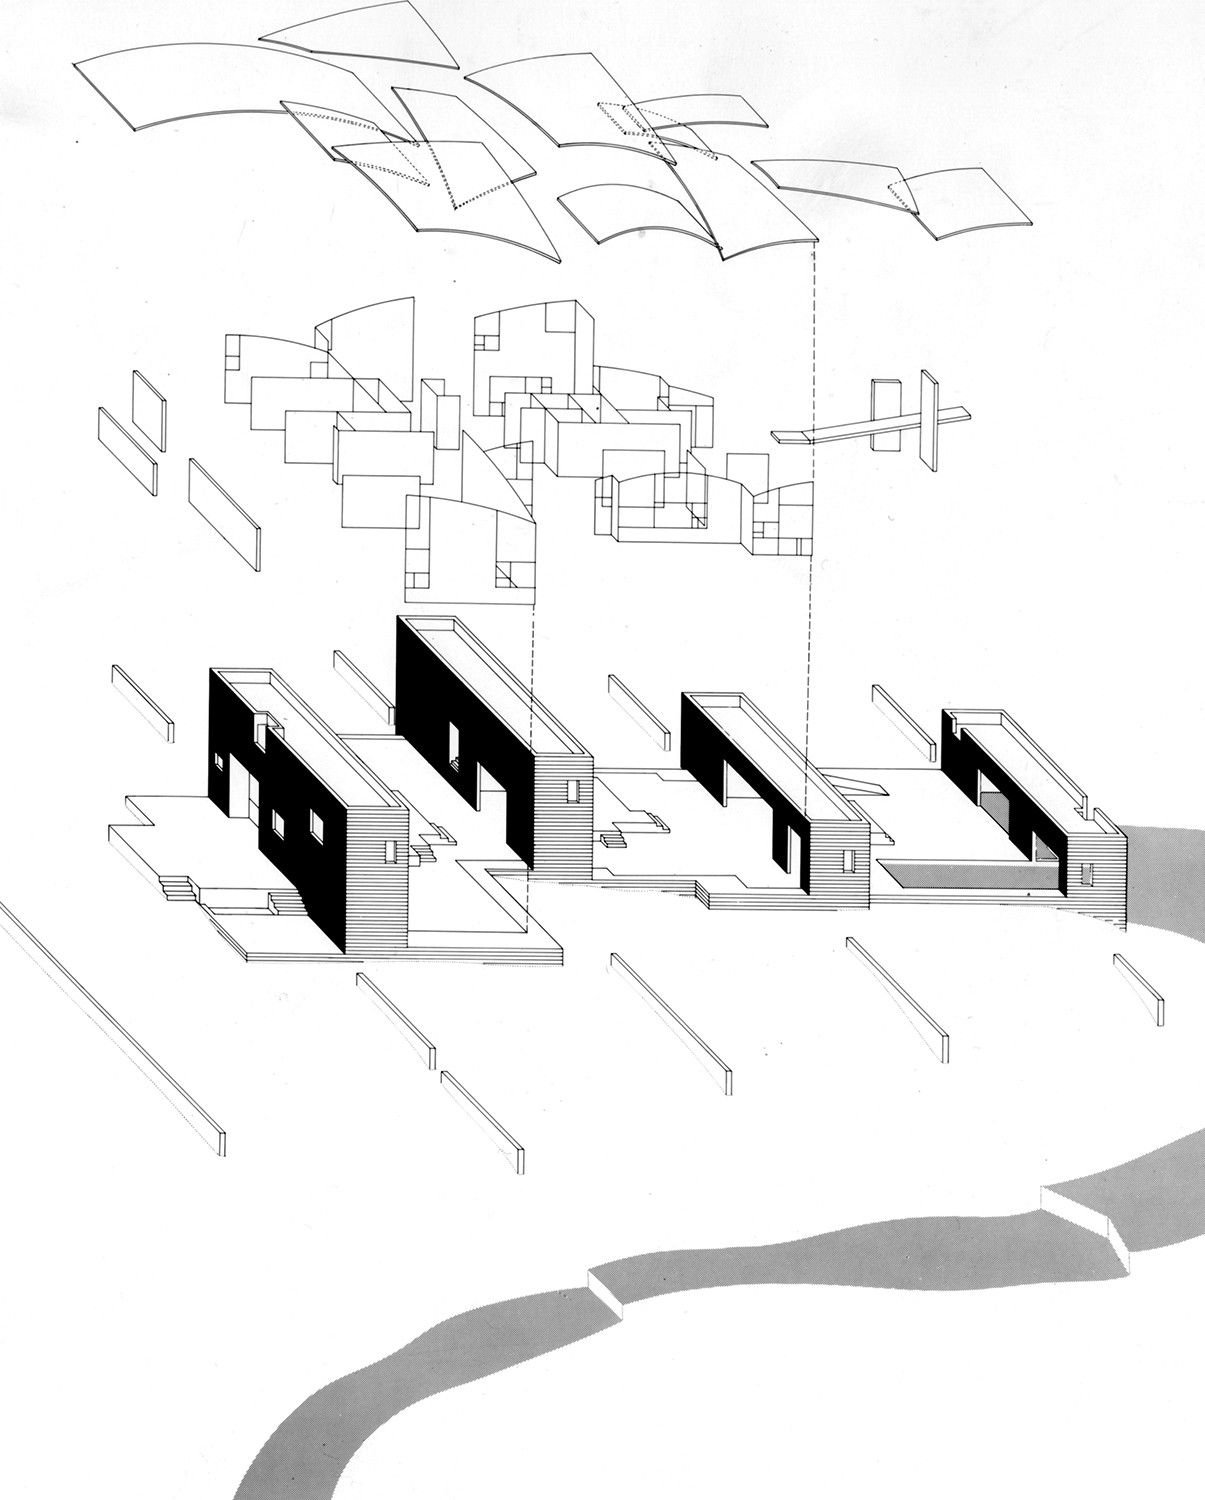 https://s3.us-east-2.amazonaws.com/steven-holl/uploads/projects/project-images/StevenHollArchitects_Stretto_explodedaxon_WV.jpg